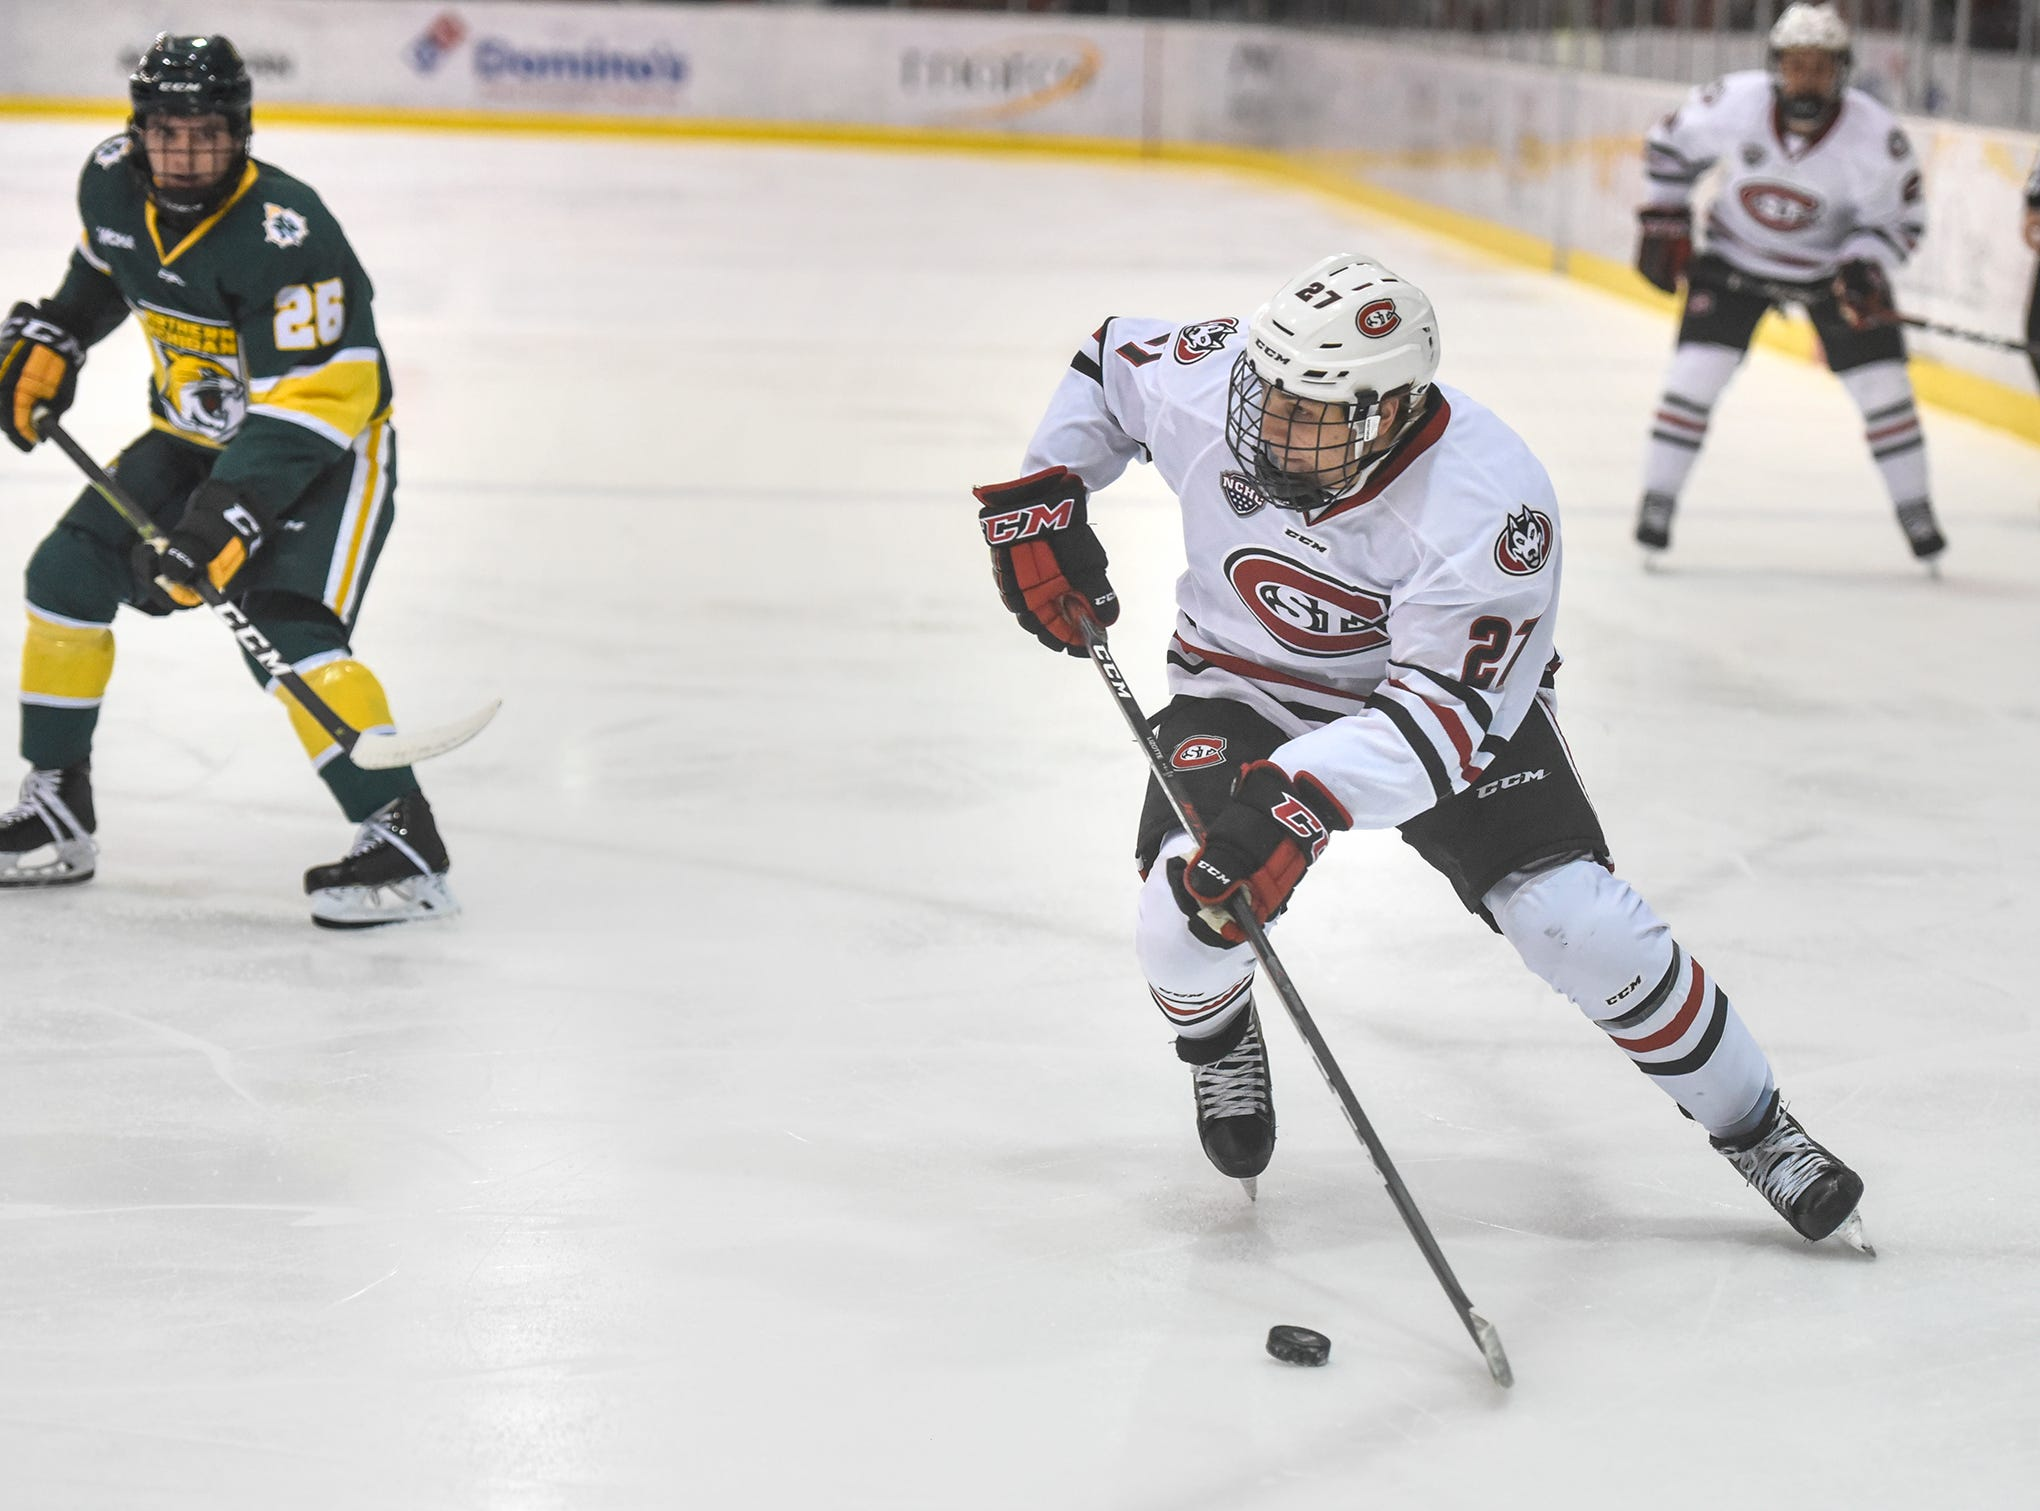 Jake Wahlin skates with the puck during the Saturday, Oct. 20, game against Northern Michigan at the Herb Brooks National Hockey Center in St. Cloud.